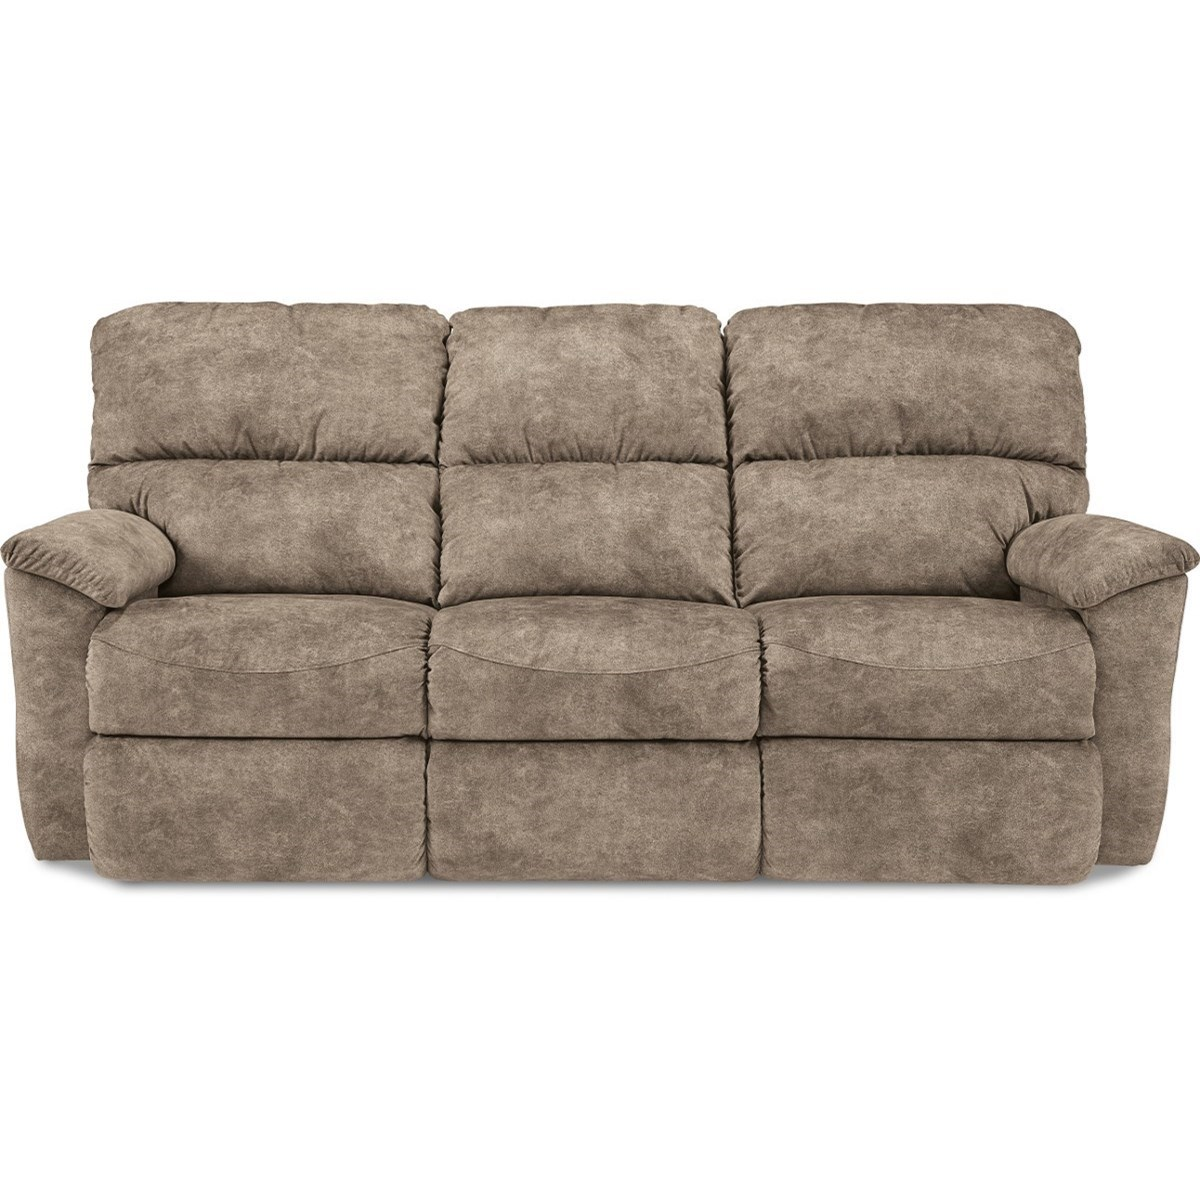 Brooks Power Reclining Sofa w/ Headrests by La-Z-Boy at Jordan's Home Furnishings